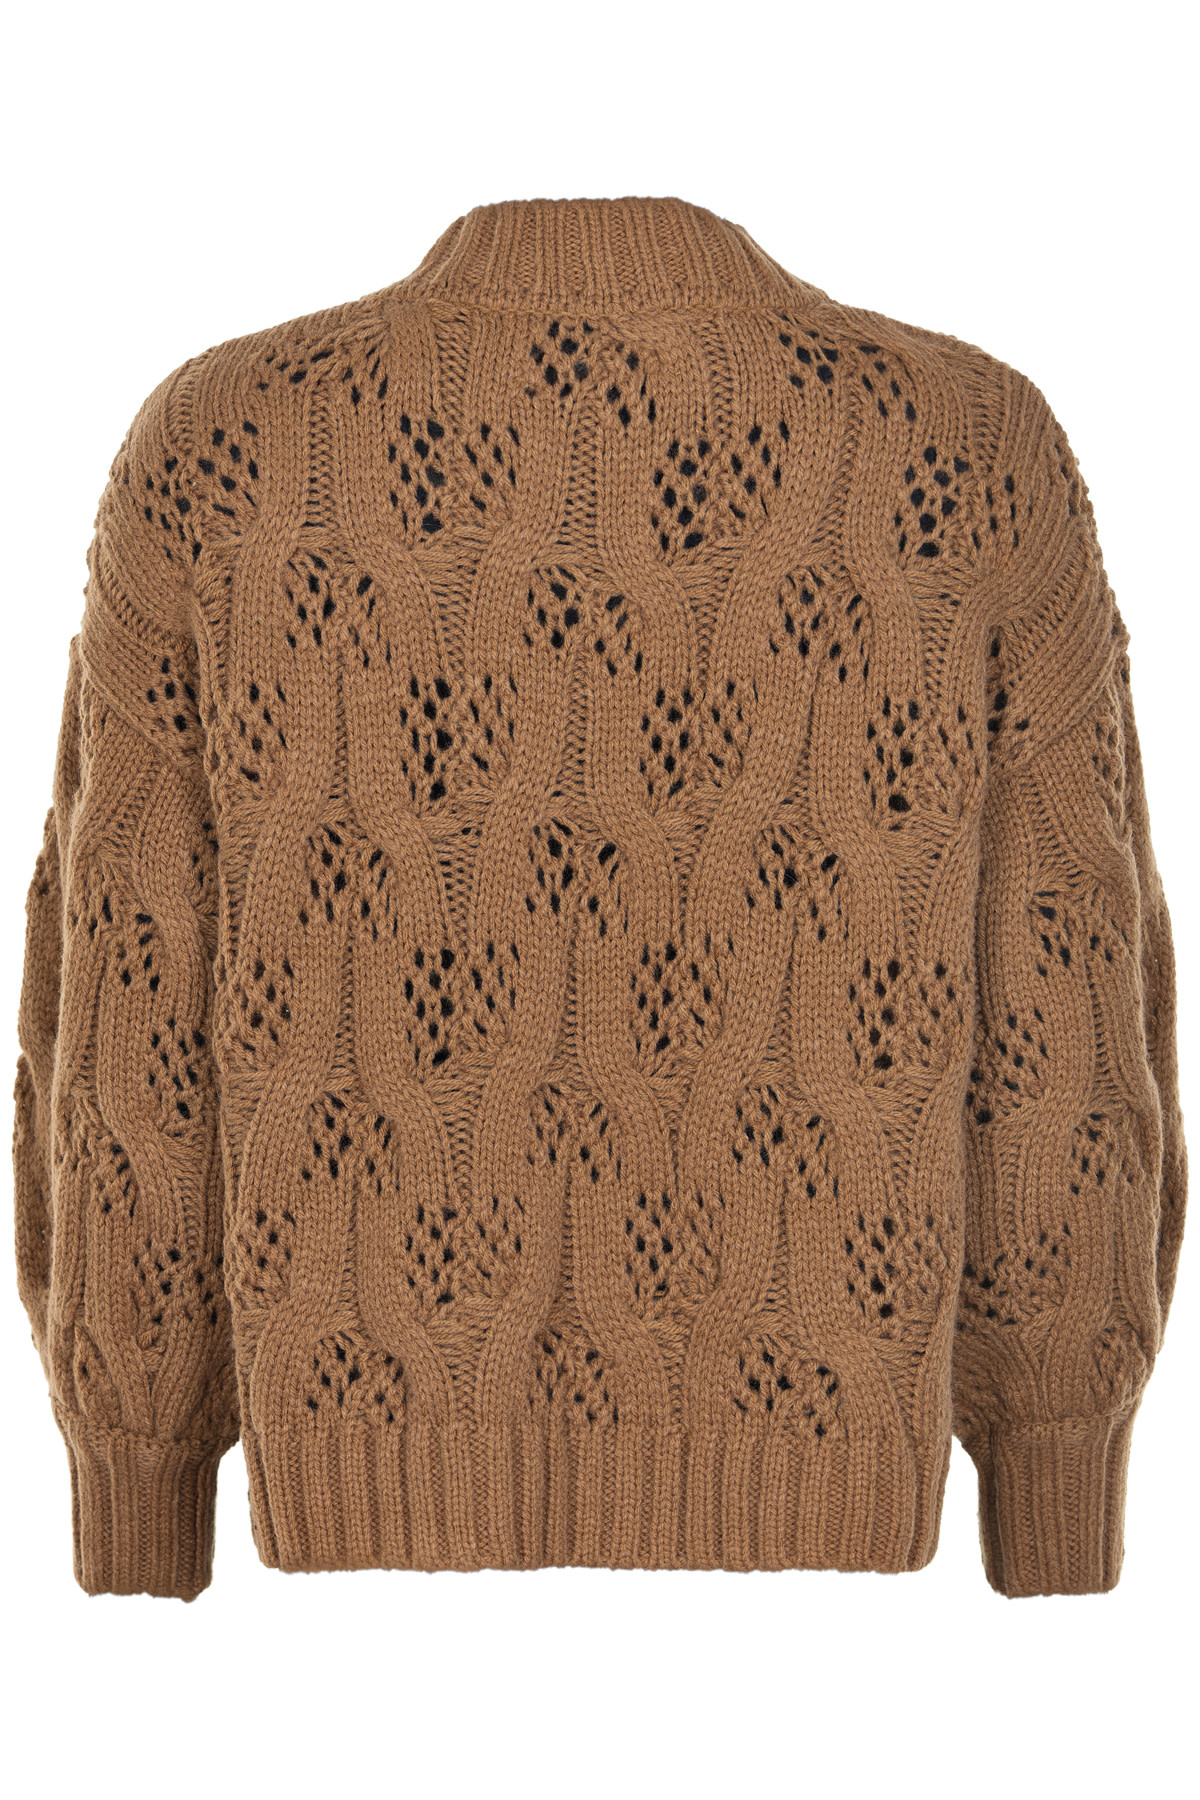 AndLess Hanie Pullover